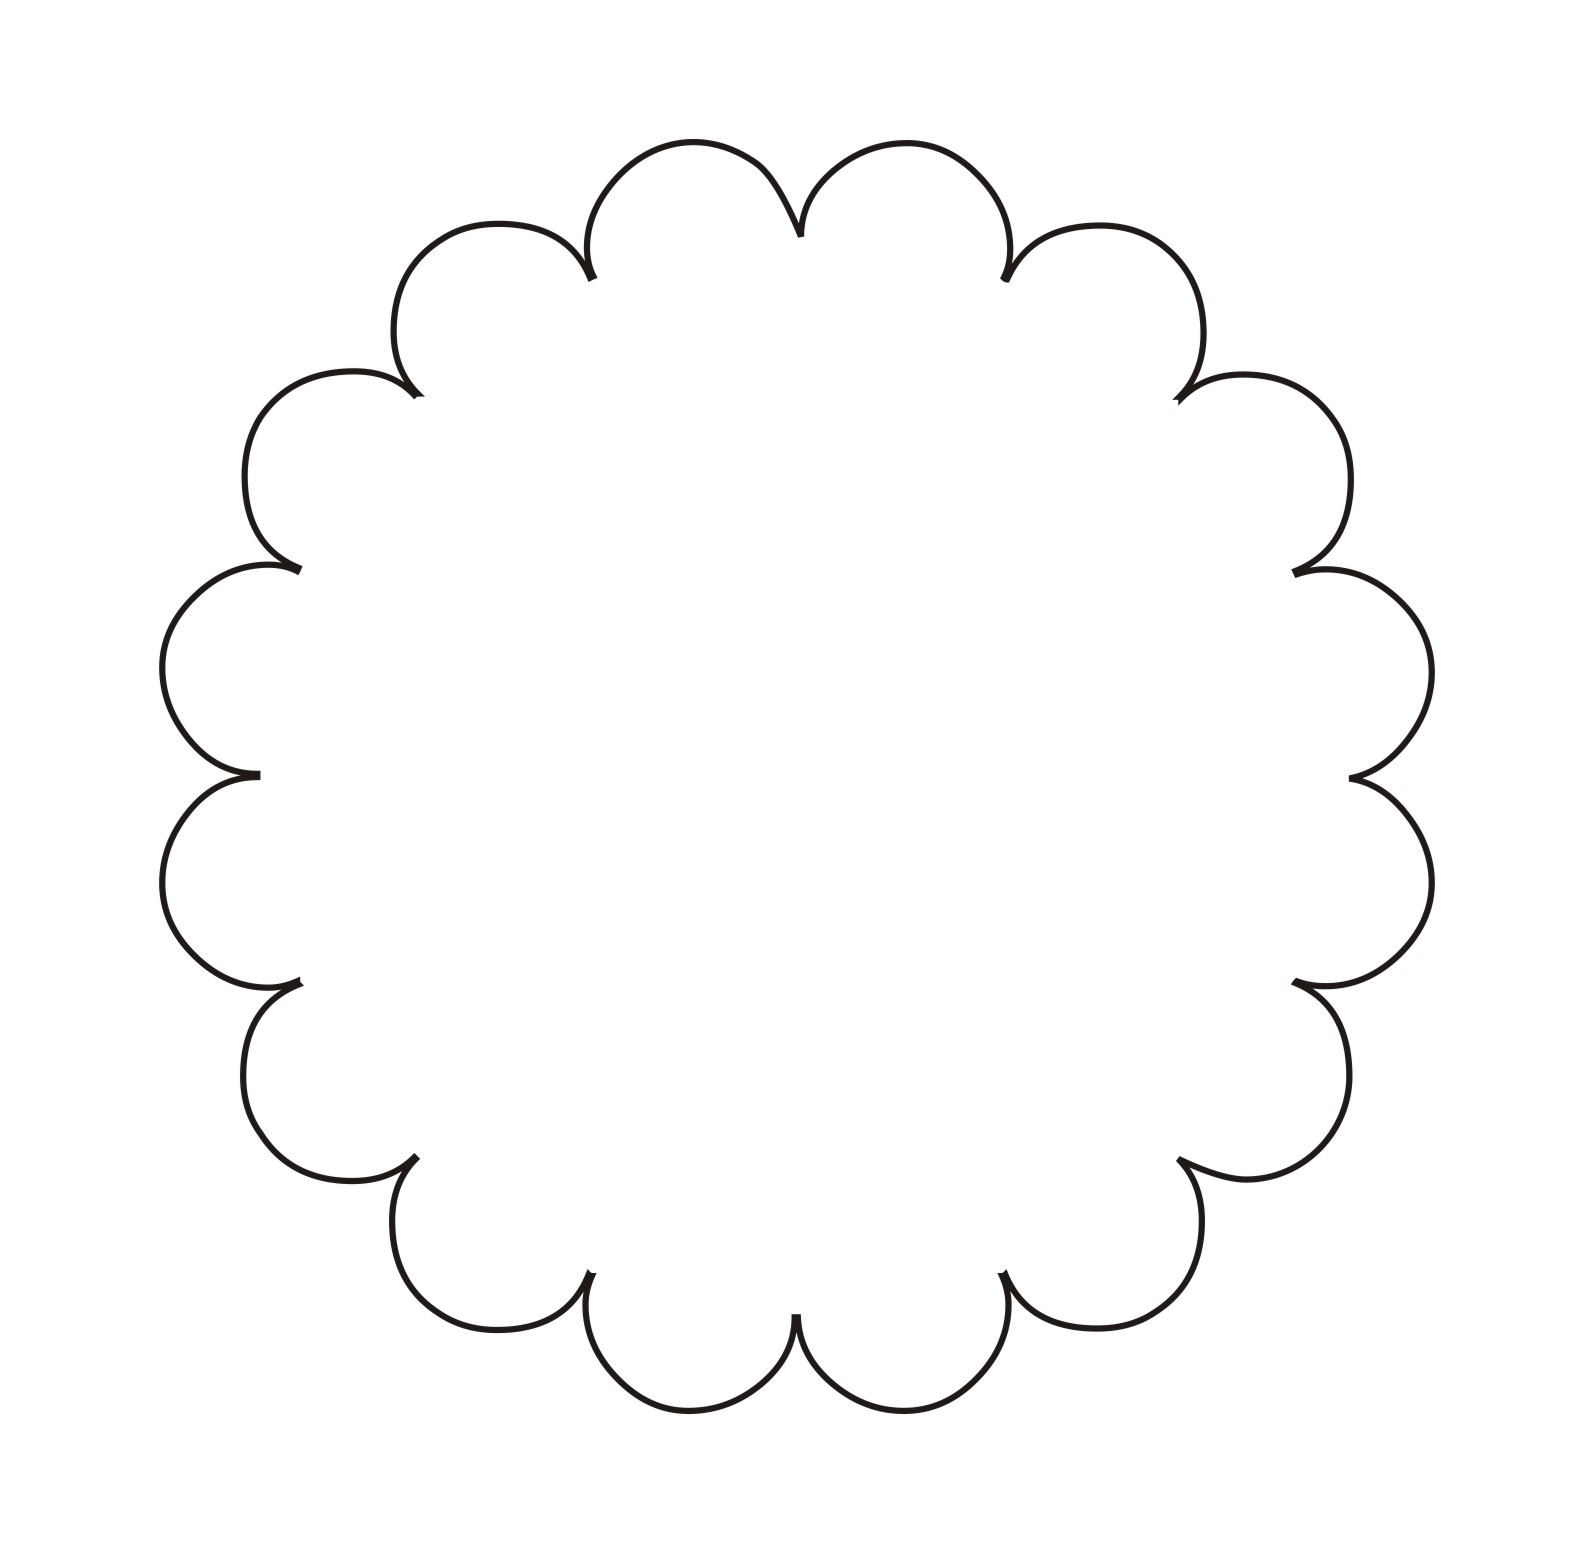 Scallop Shape Png - Scallop Shape Clipart